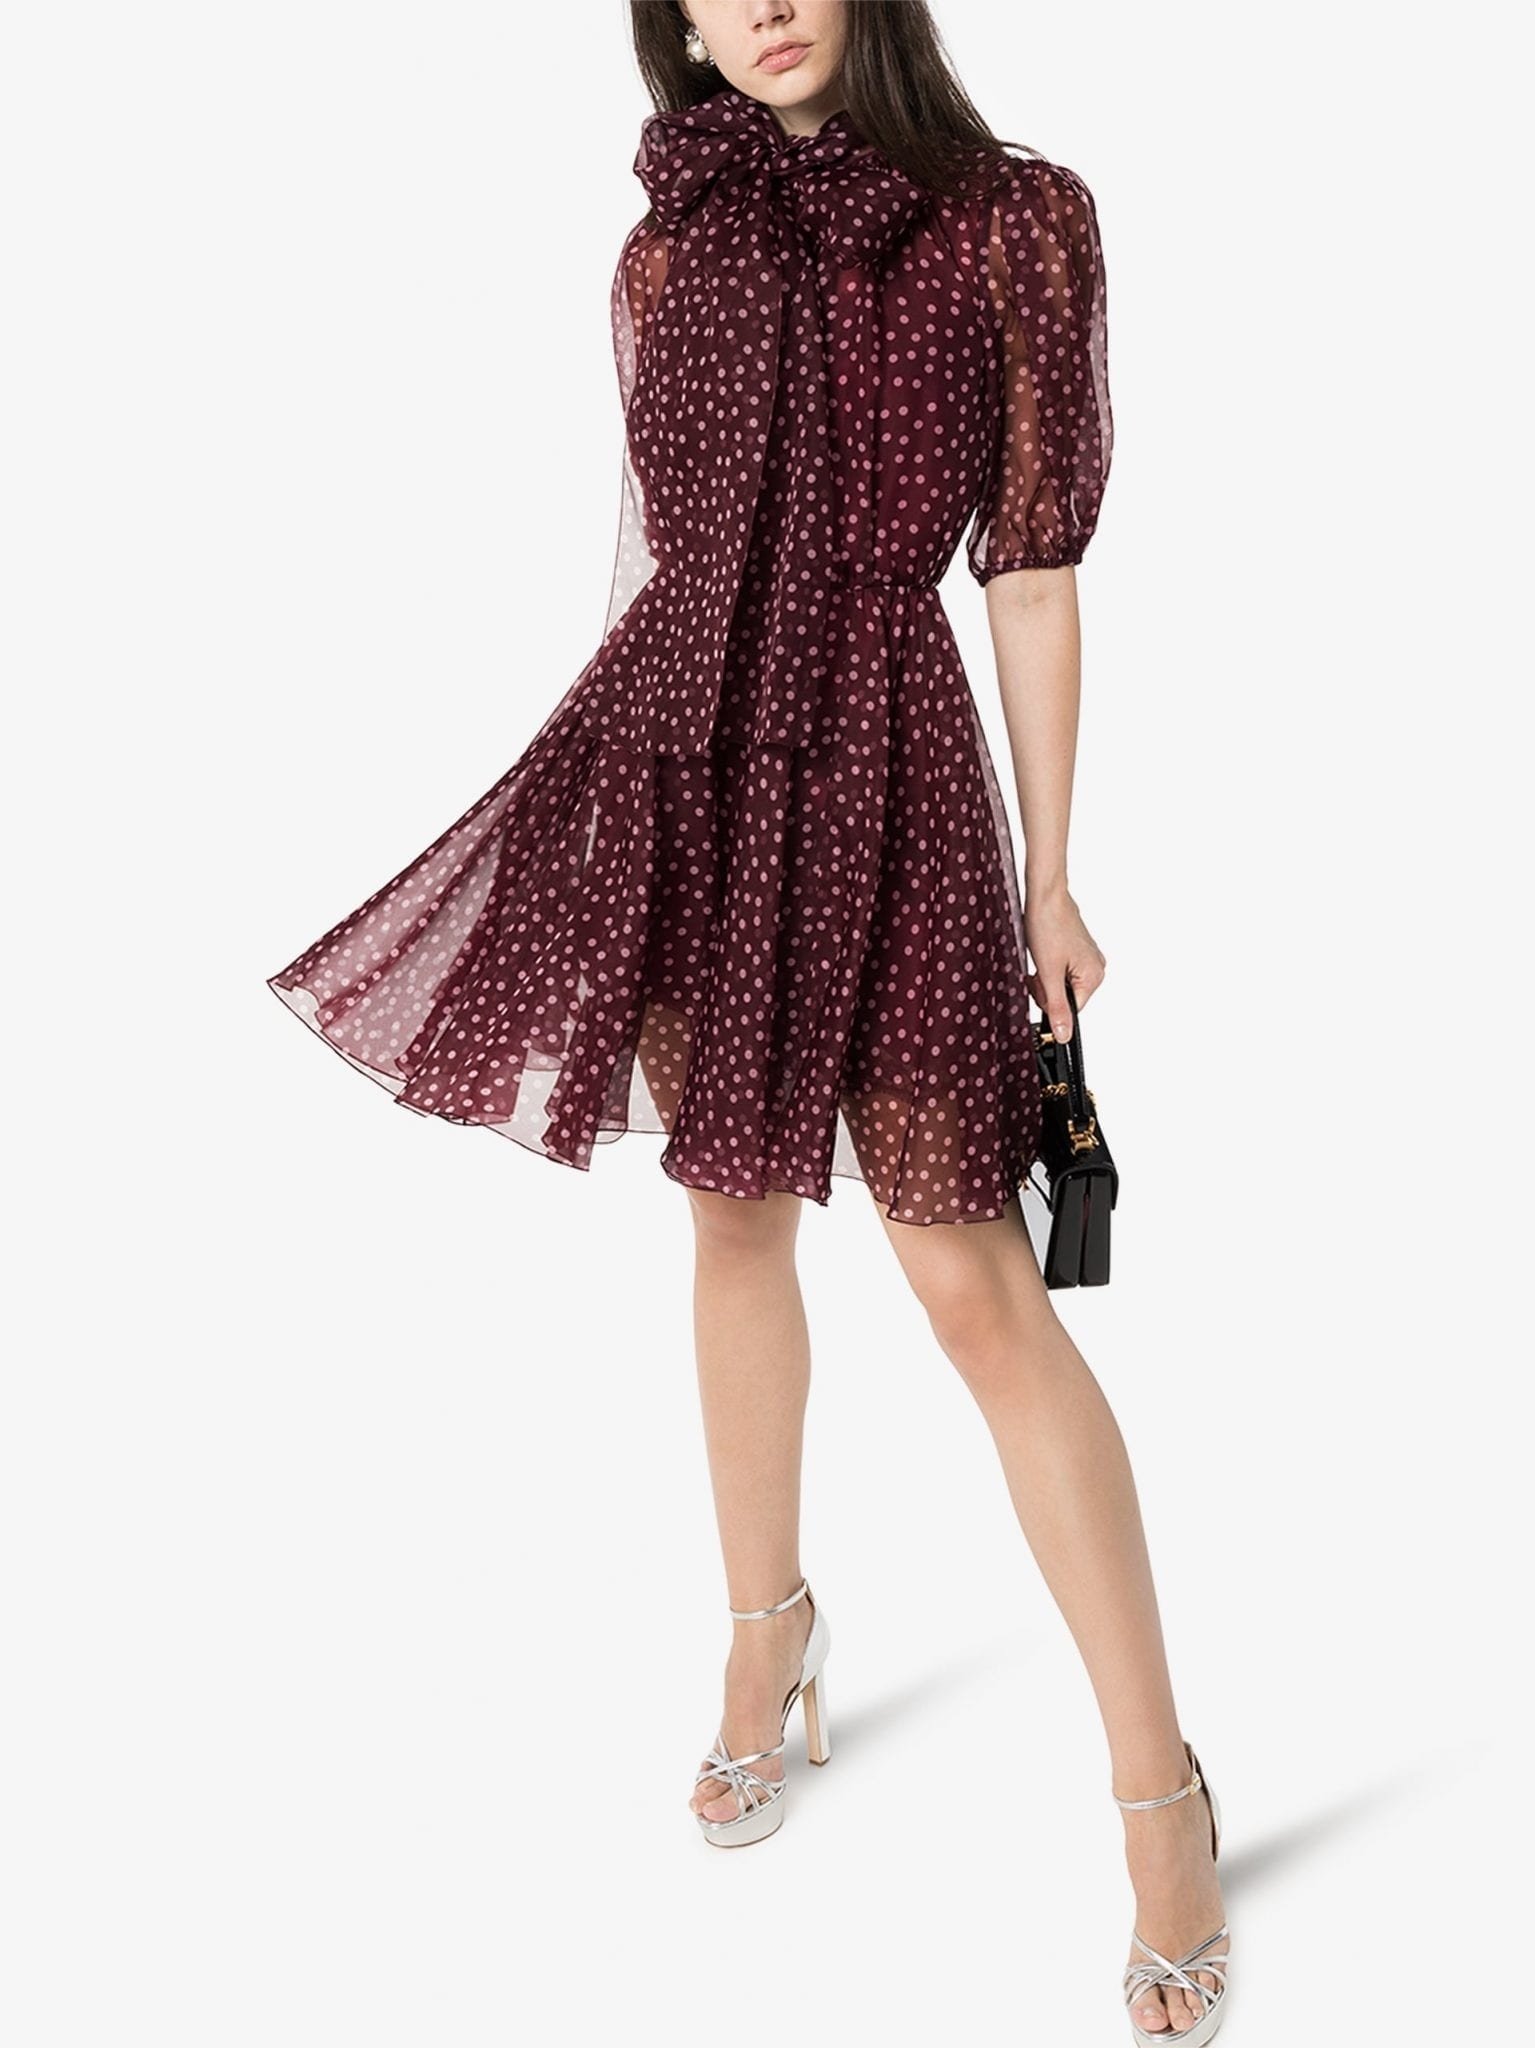 DOLCE & GABBANA Polka Dot Silk Organza Mini Dress